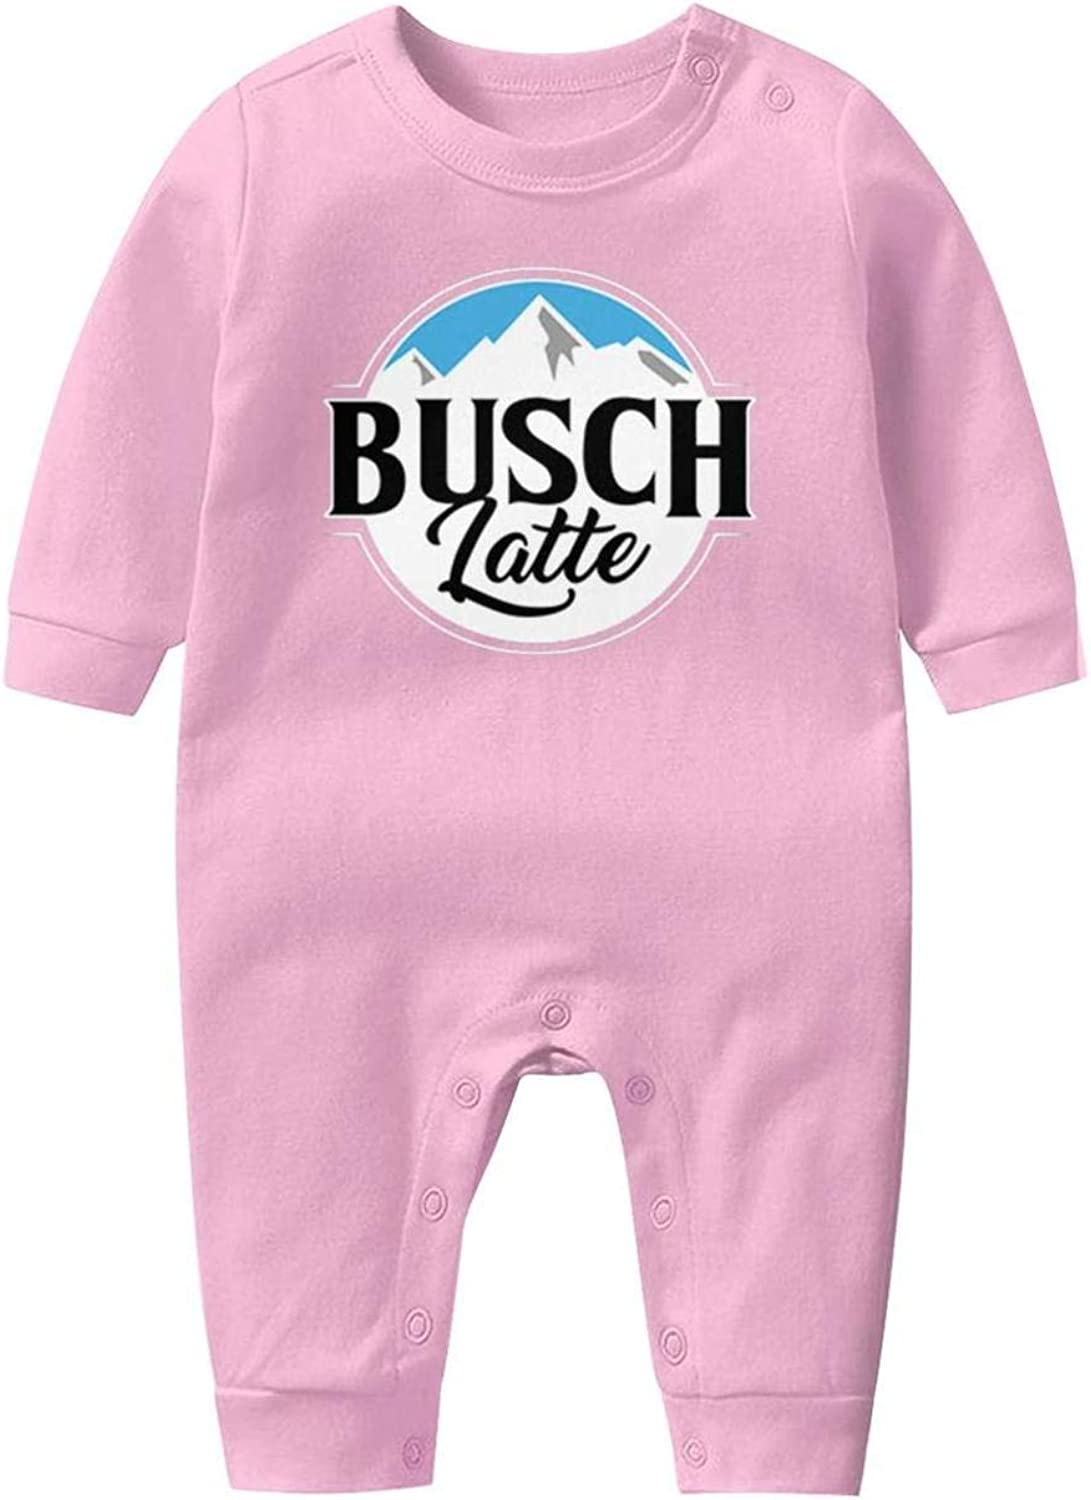 Pajamas for Baby Boy Girl YRHDIWOCJ Unisex Baby Funny Long Sleeve Footed Pajamas Busch-Brewery-Lights-Beer